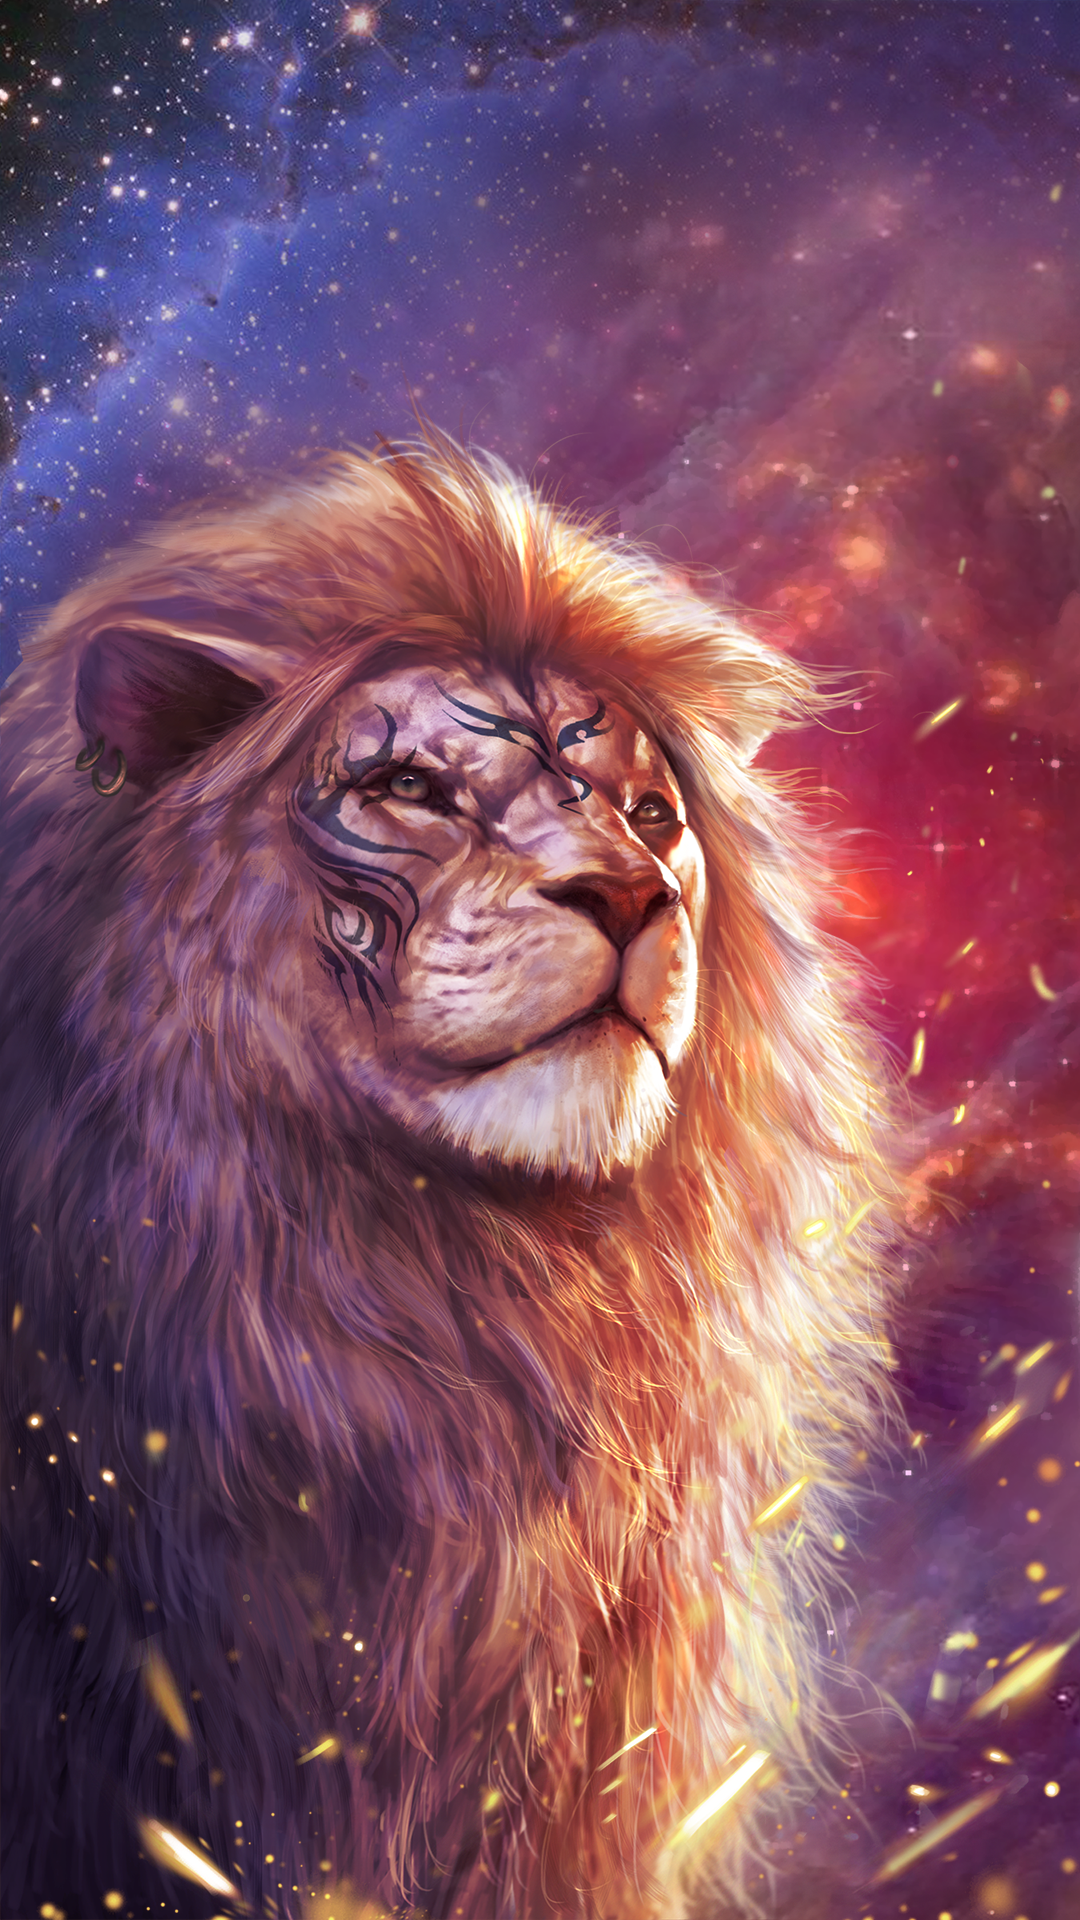 Cool lion wallpaper with totem tattoo! AnimalTattoos